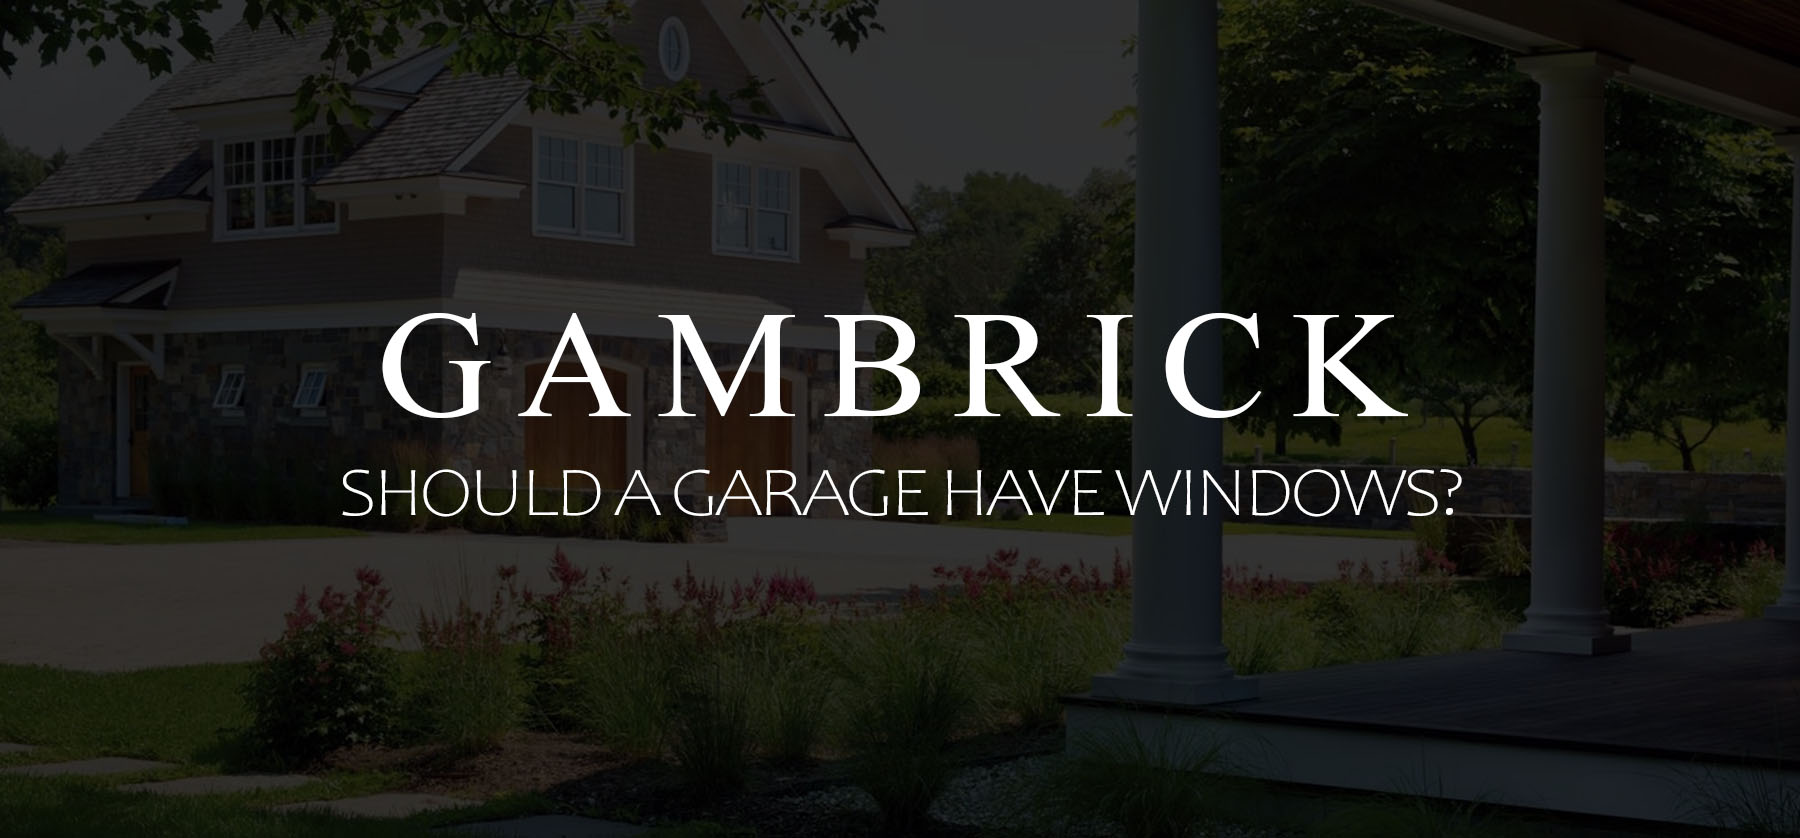 should a garage have windows banner picture